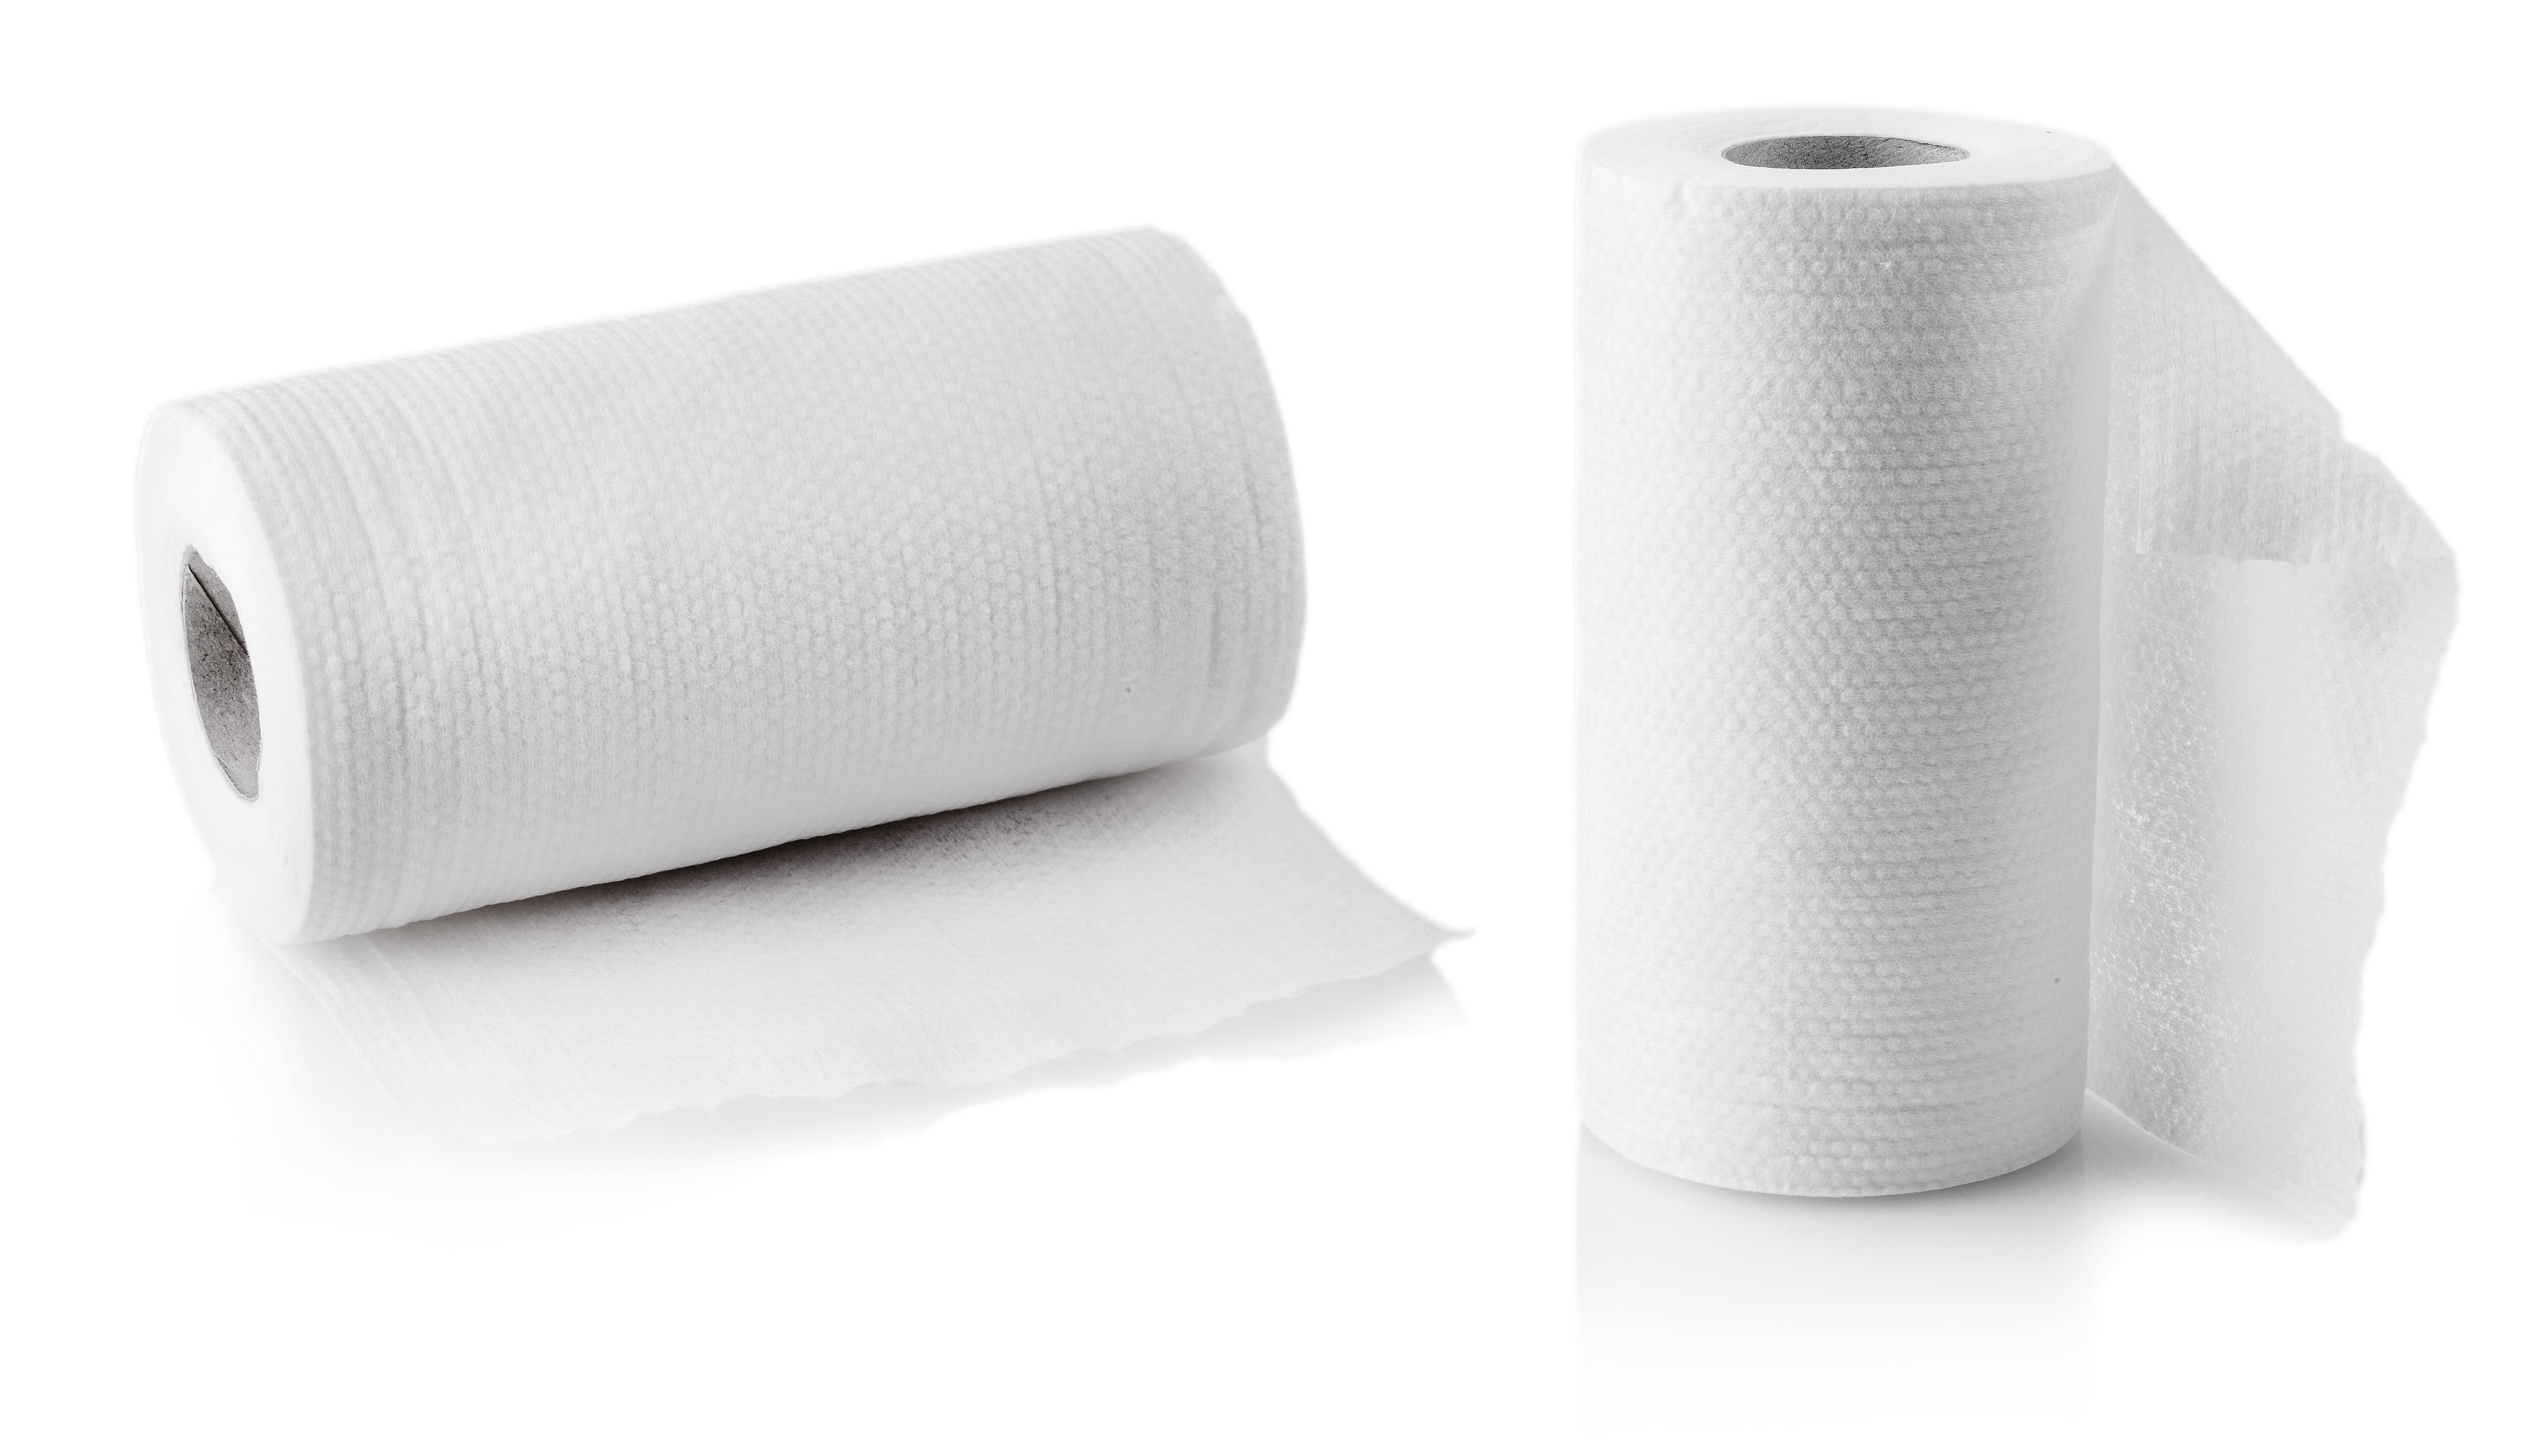 Set of roll of paper kitchen towels isolated on the white background